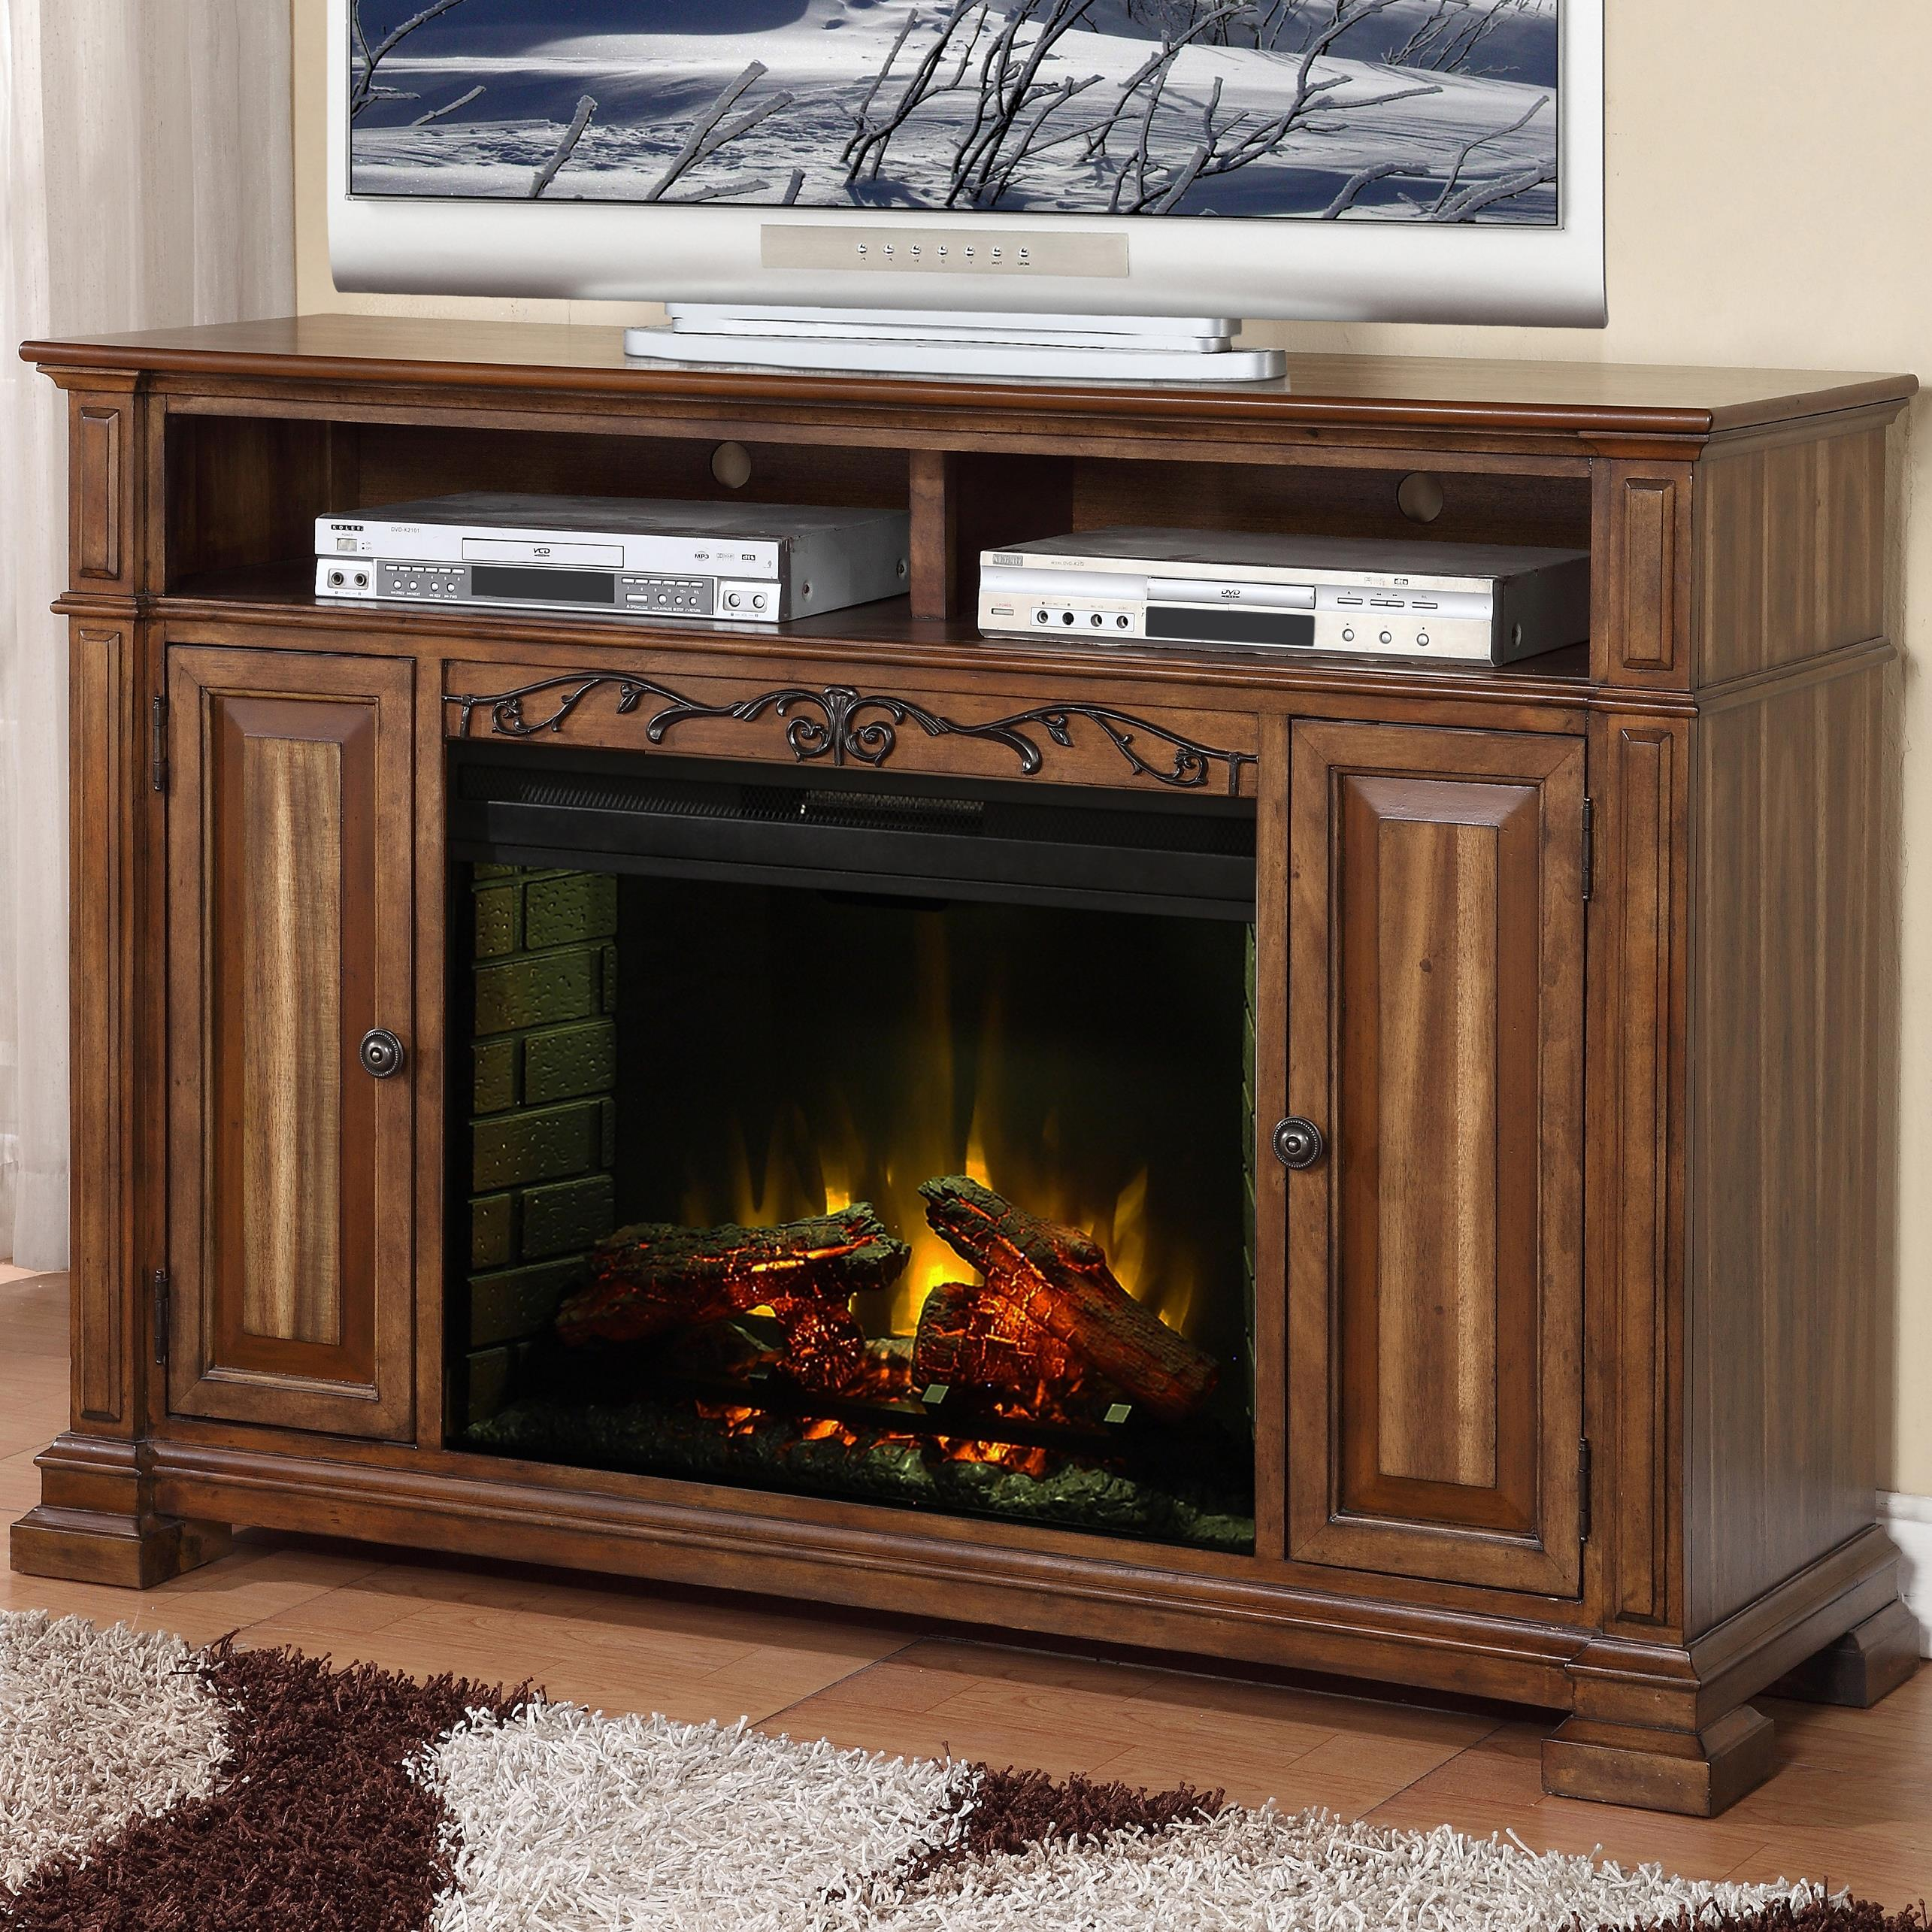 Legends Furniture Barclay Fireplace Media Center - Item Number: ZBCL-1900